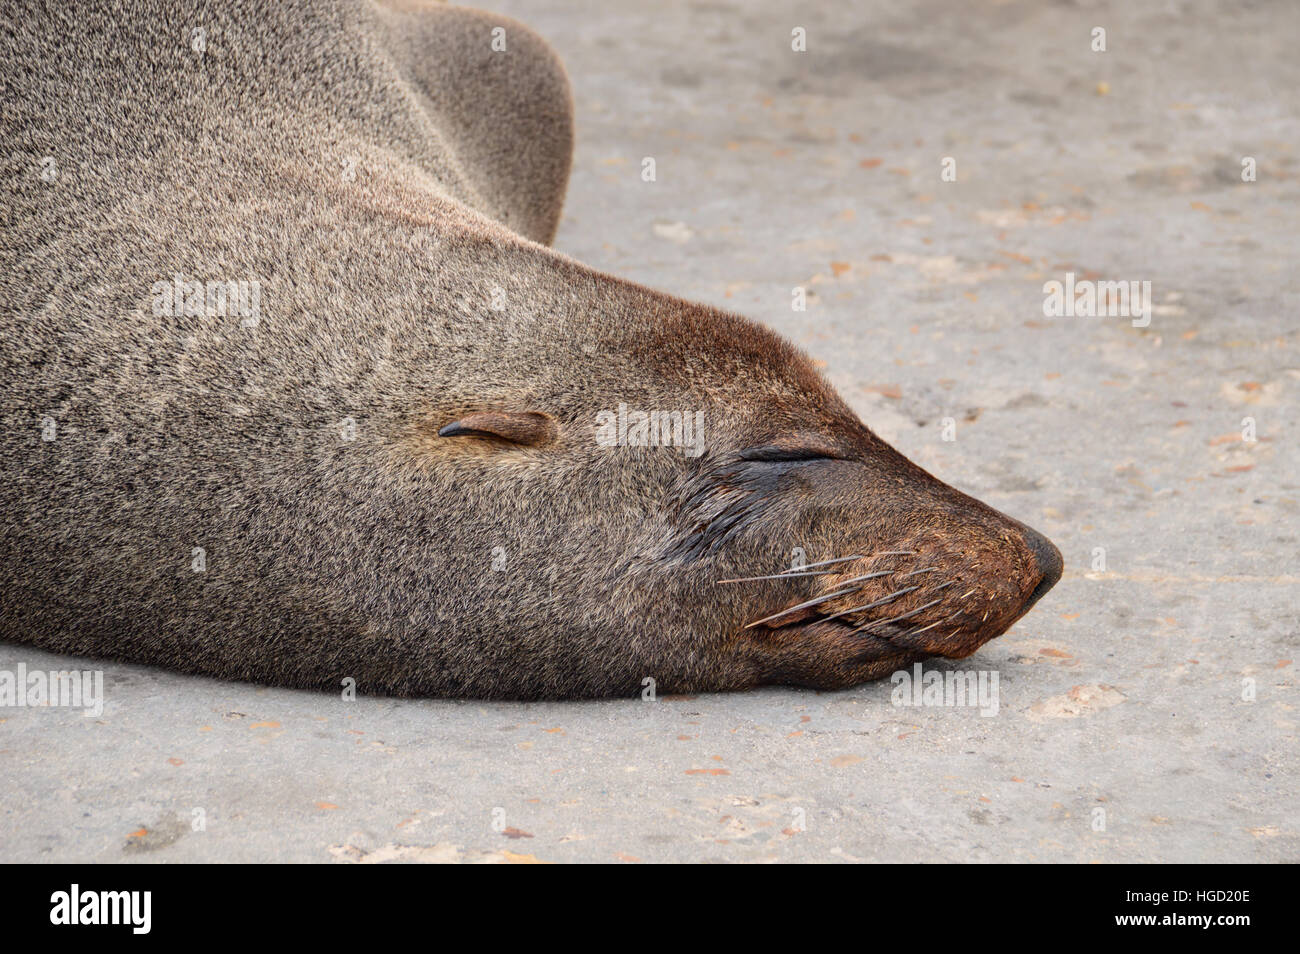 A Cape Fur Seal having a snooze on a jetty in Southern Africa - Stock Image